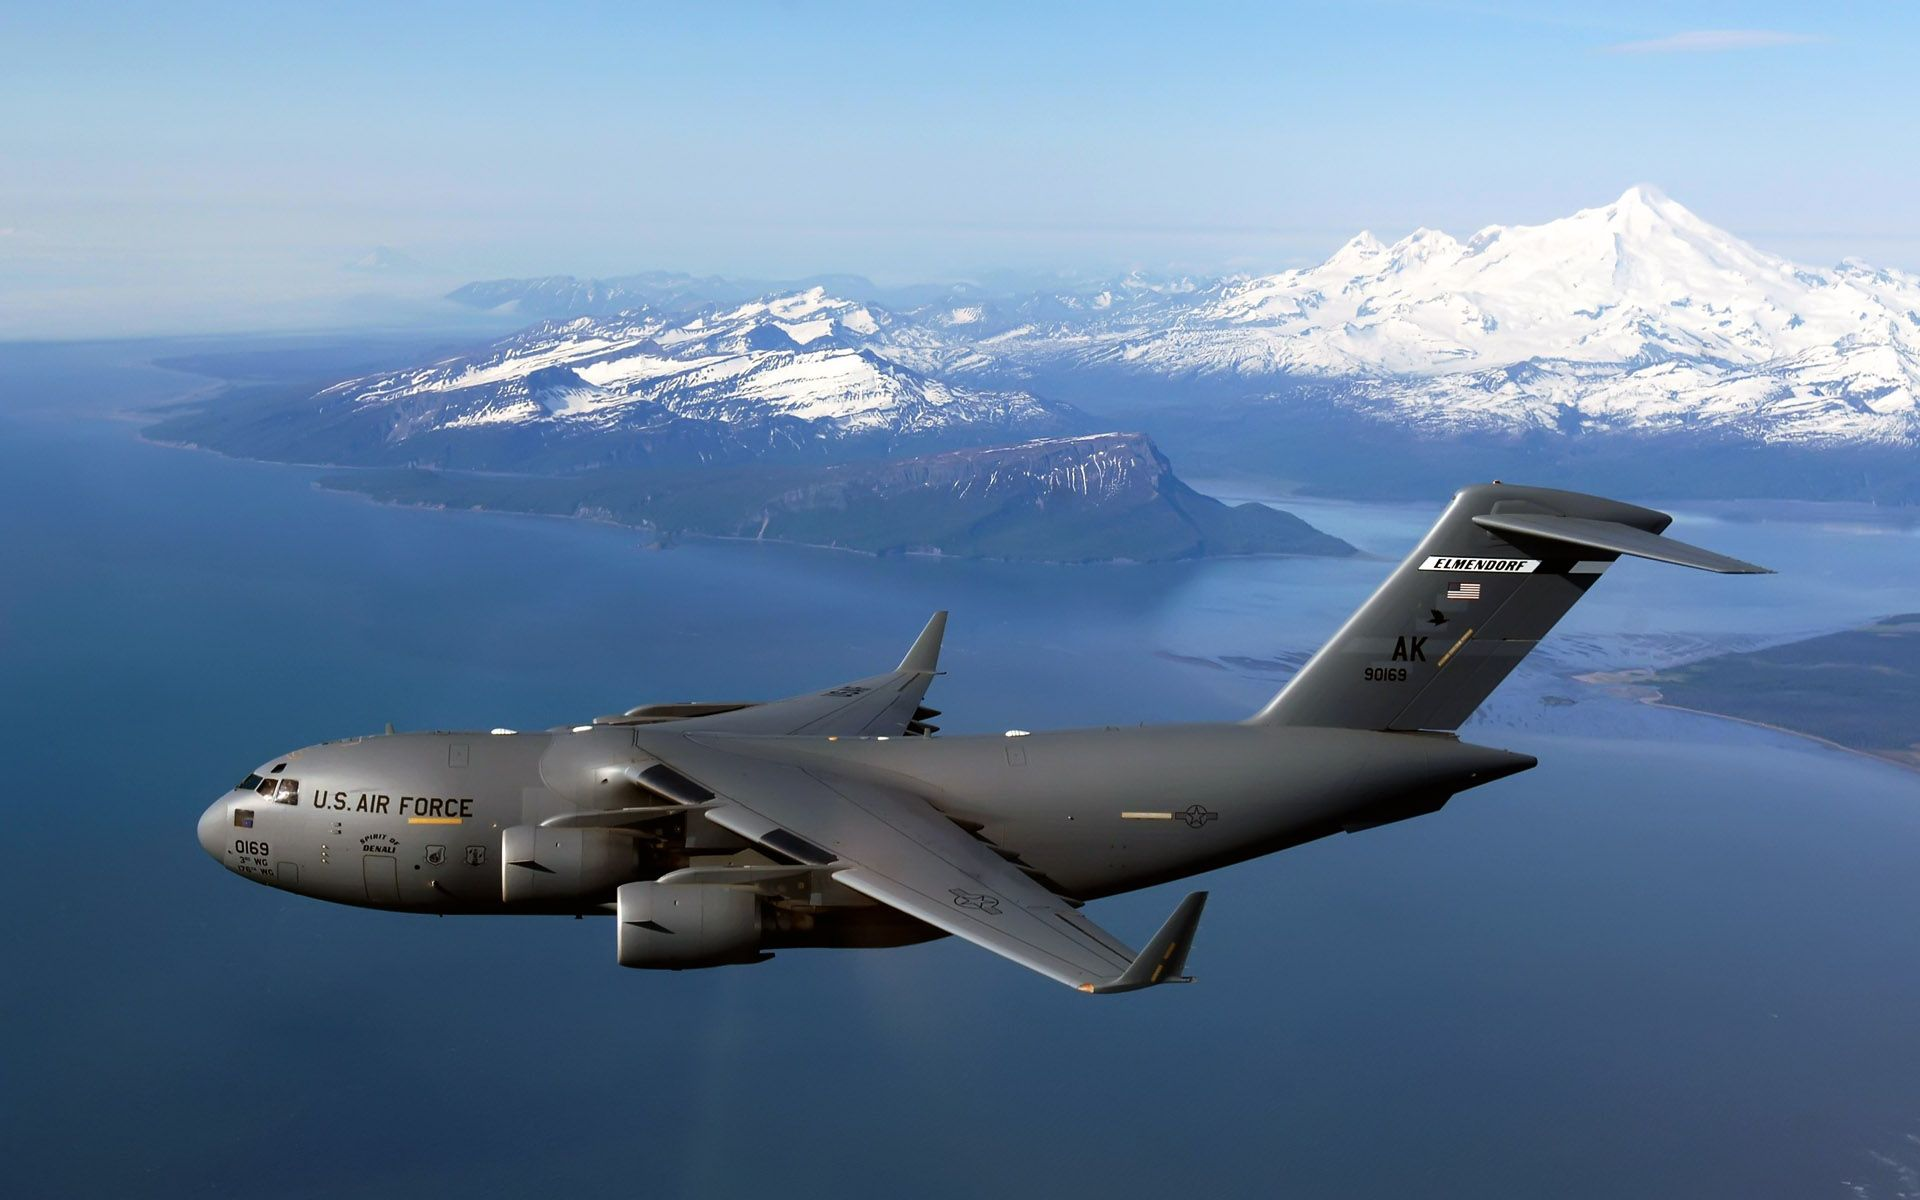 image detail for -iii over alaska hd wallpaper, c 17 globemaster